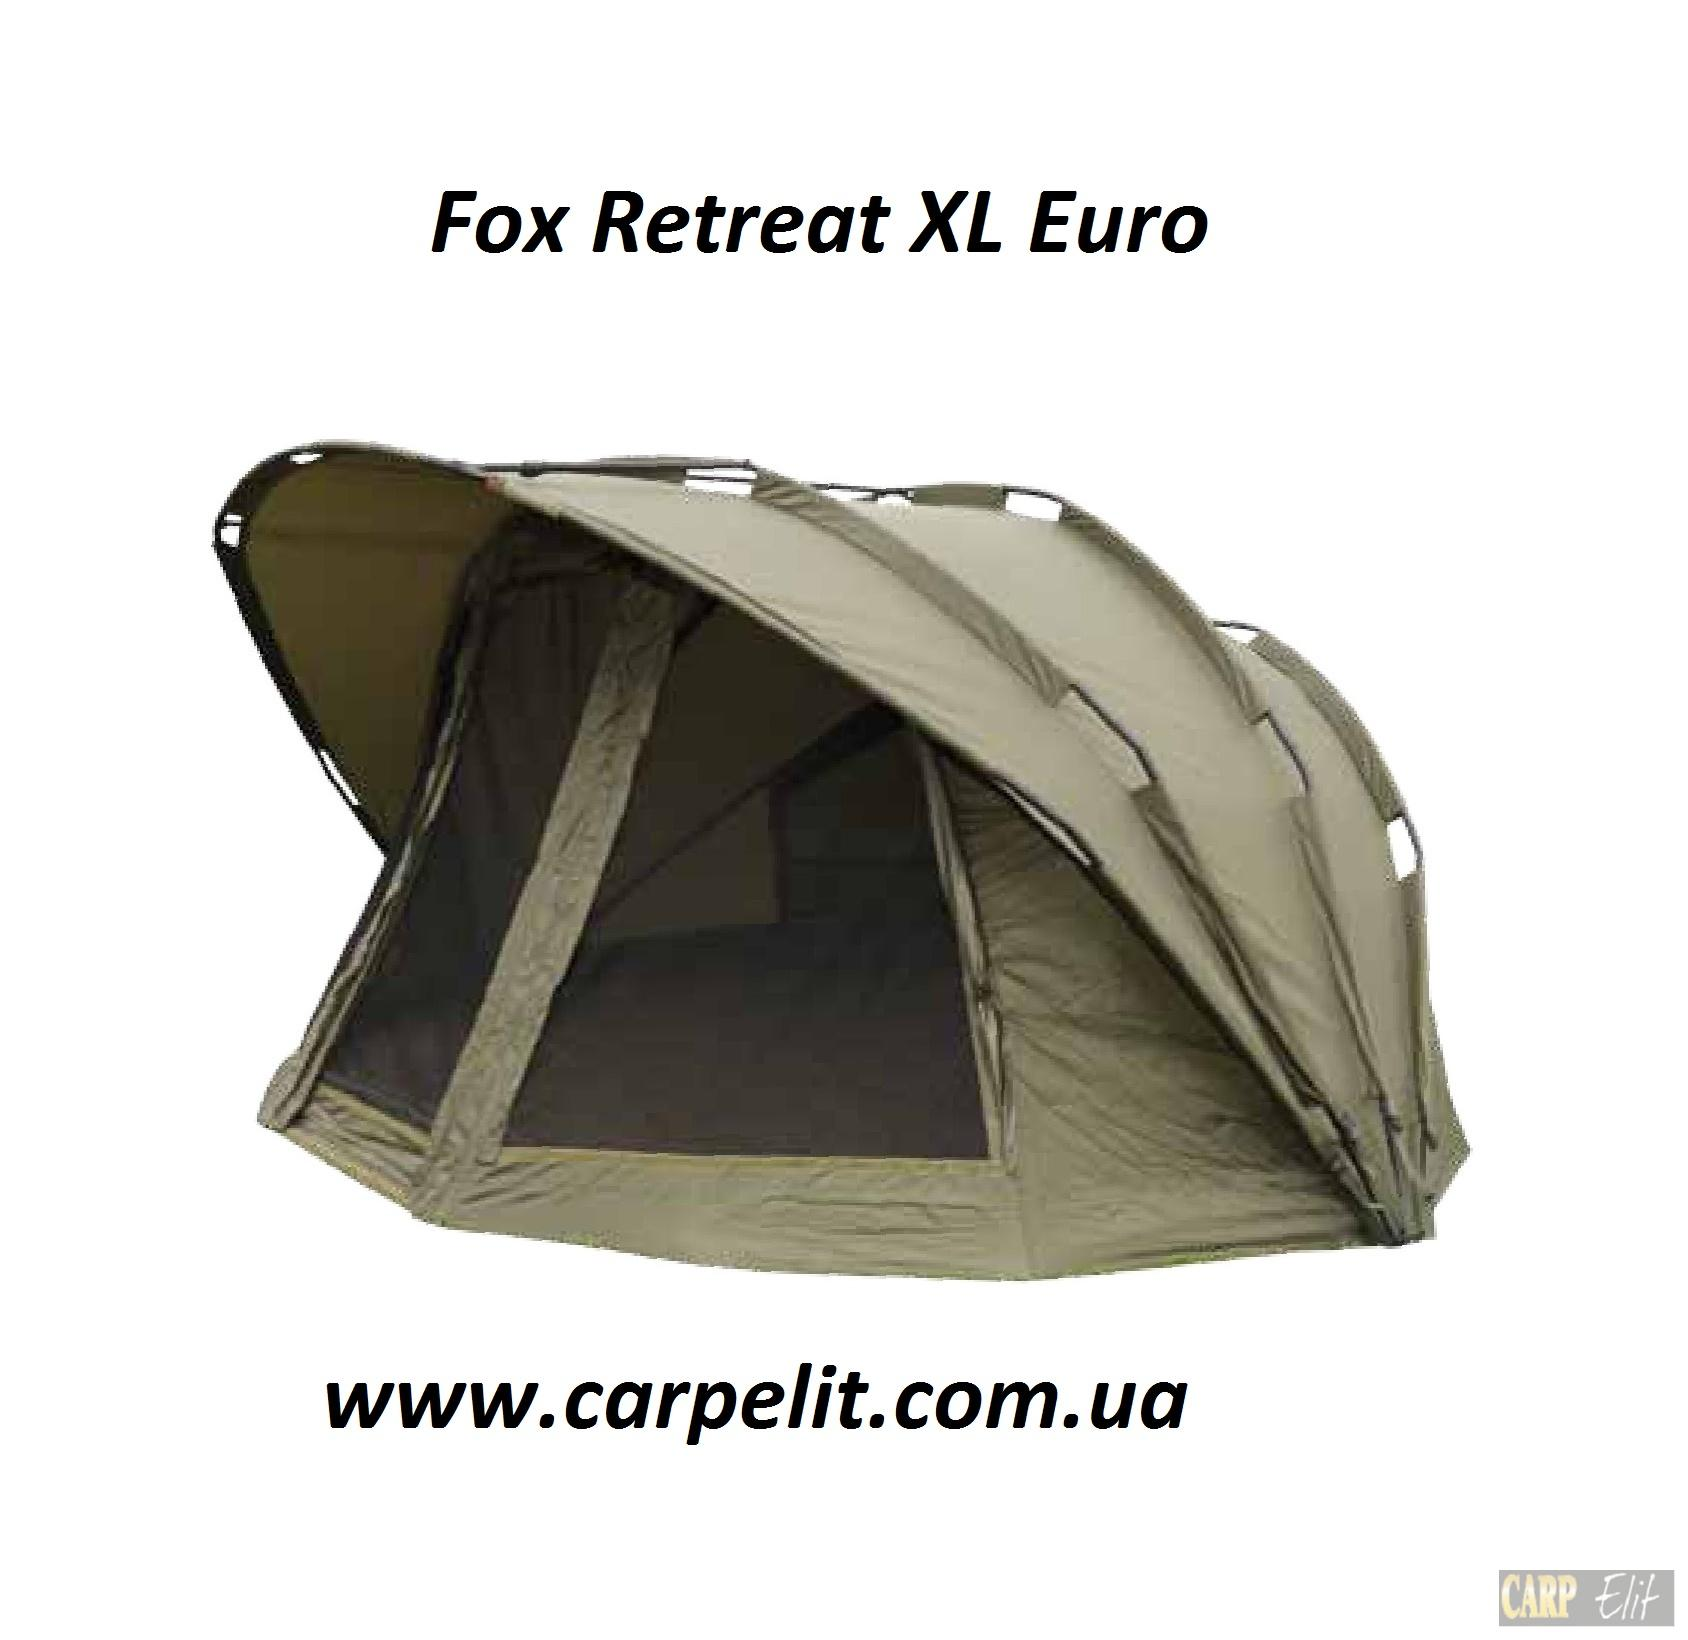 Fox Retreat XL Euro